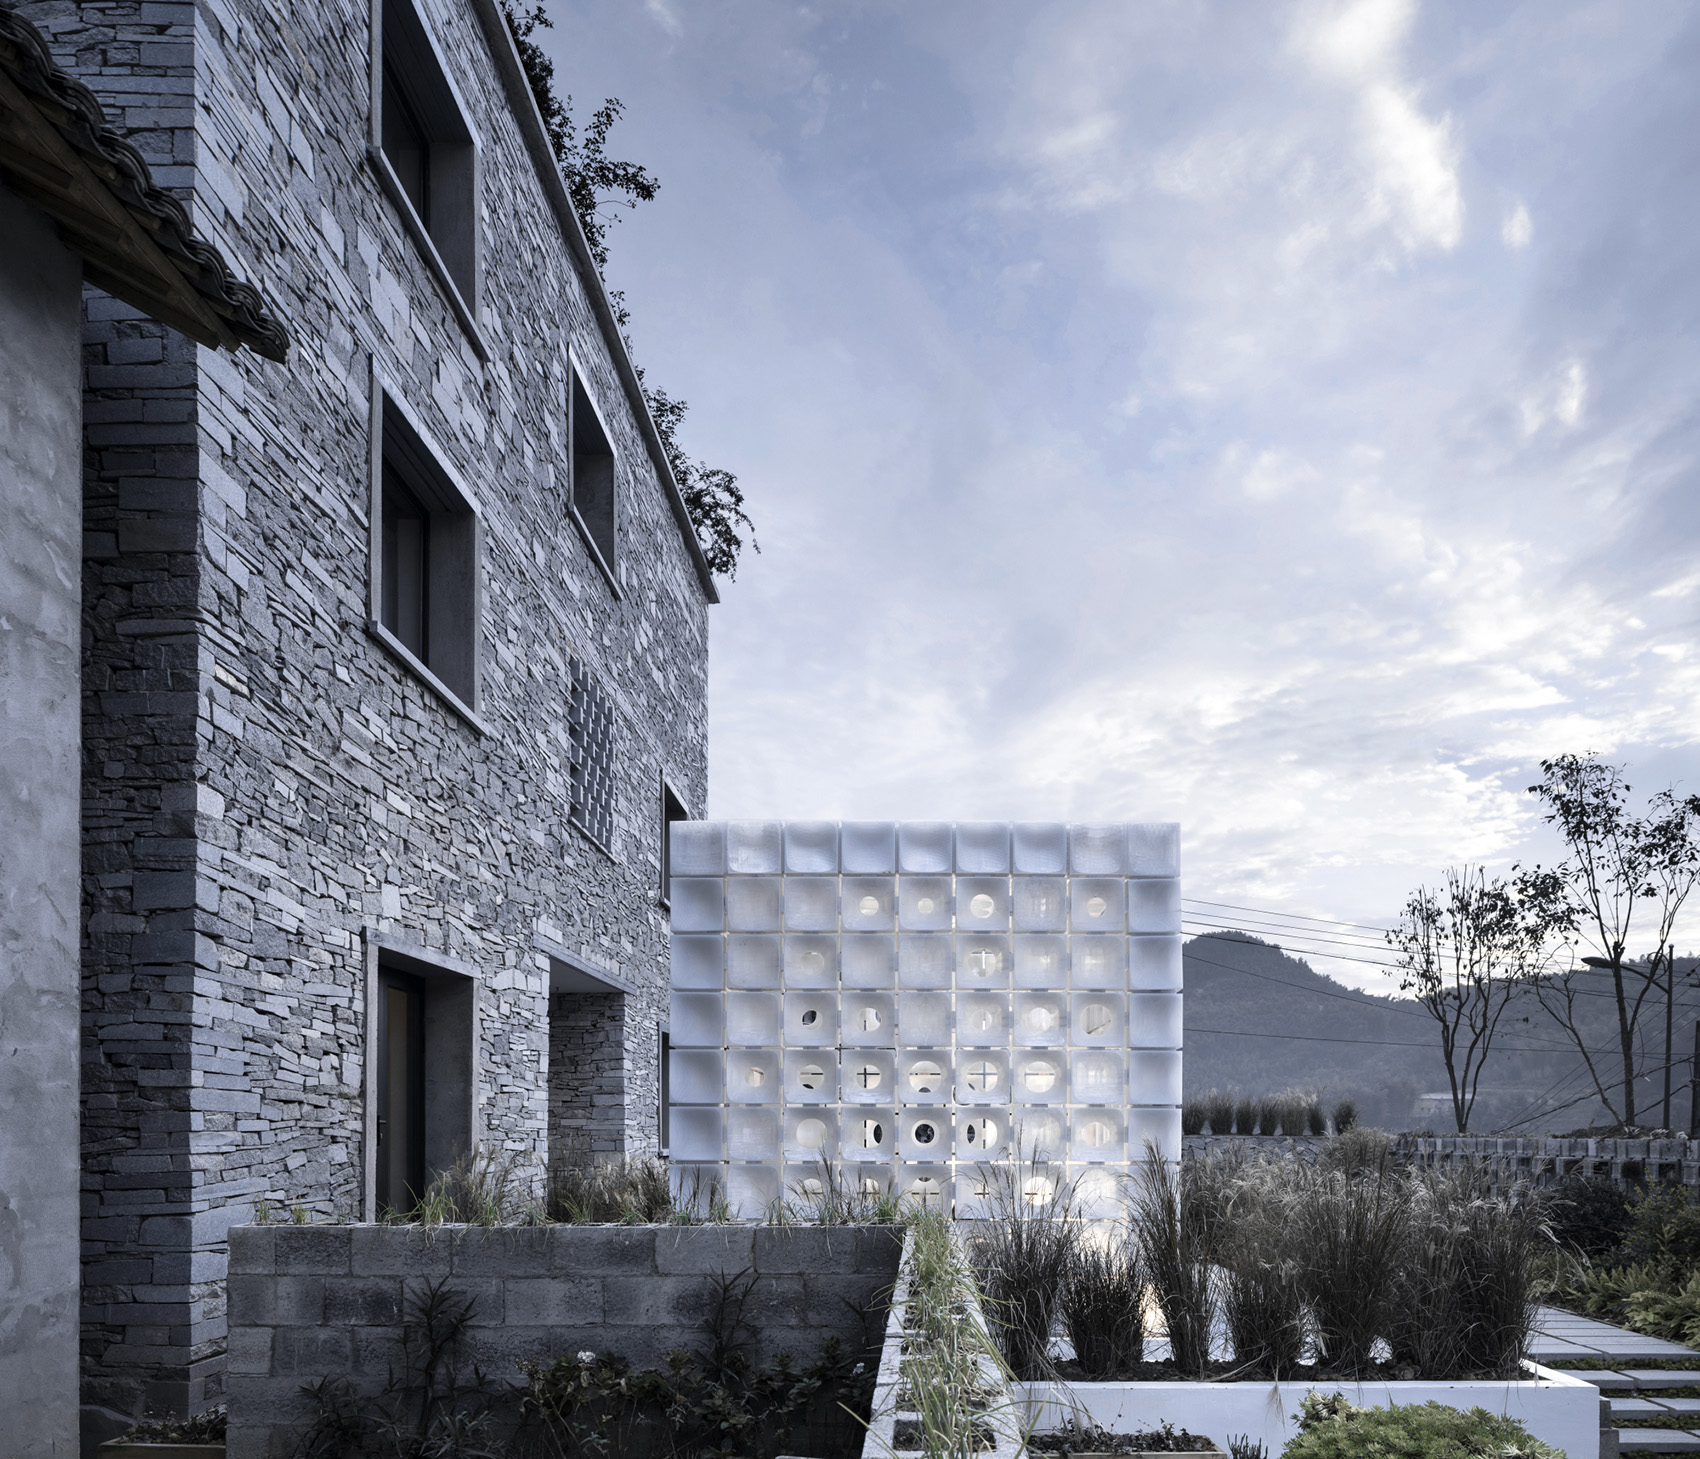 045-LEI-House-China-by-AZL-Architects.jpg